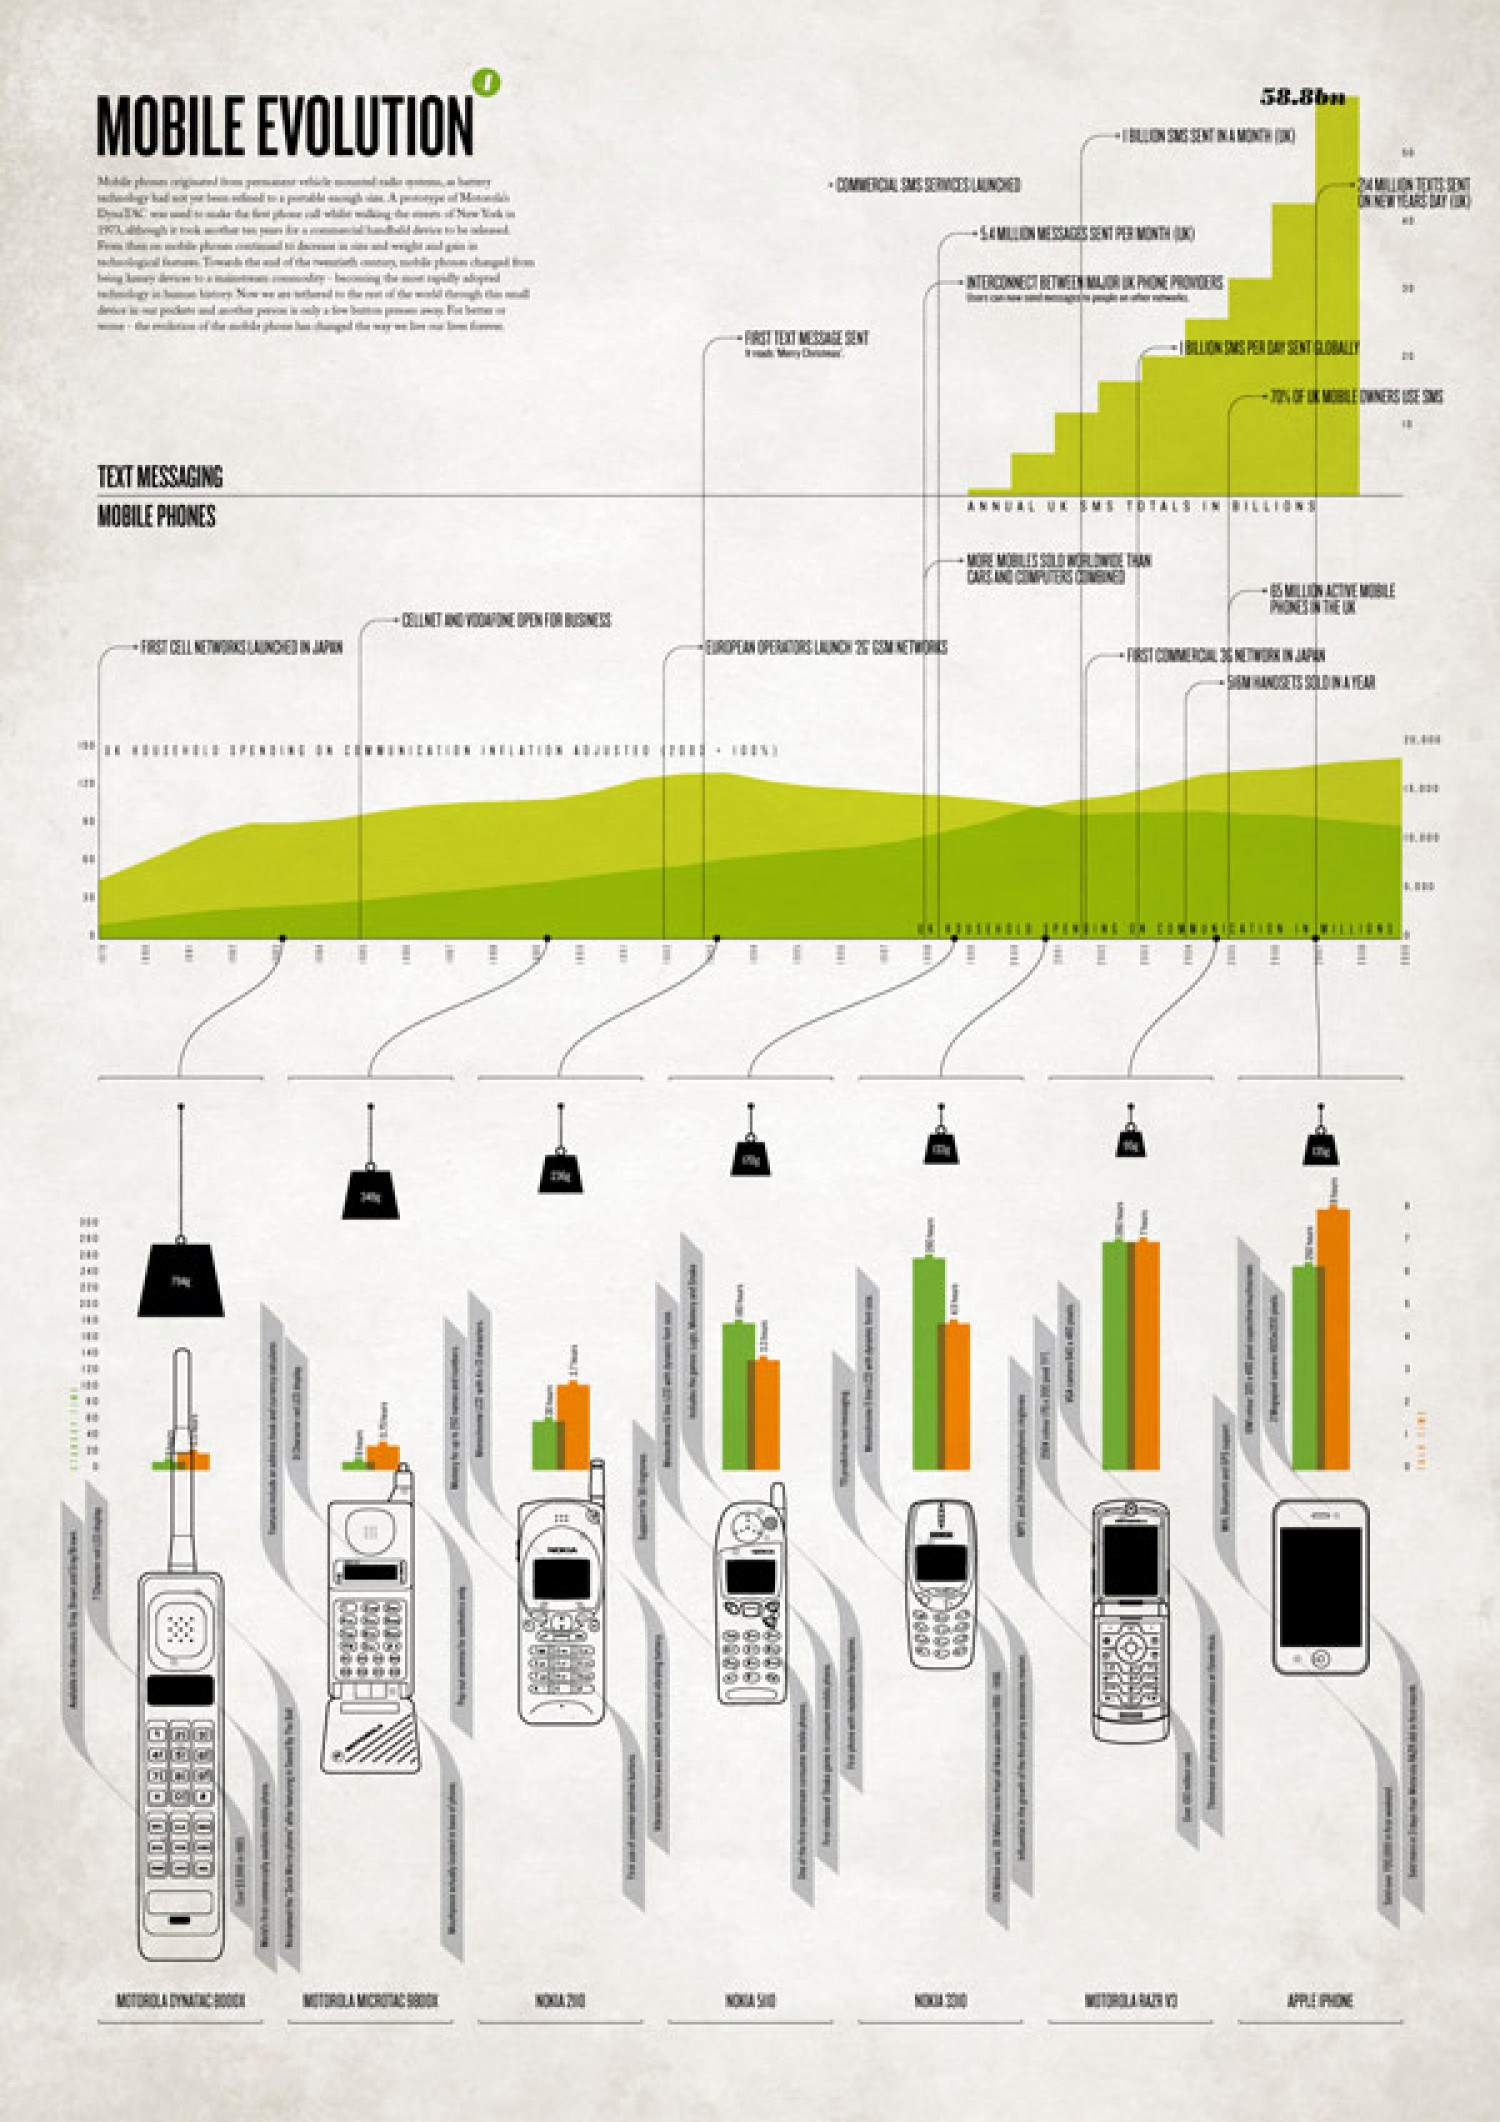 Mobile Evolution Infographic